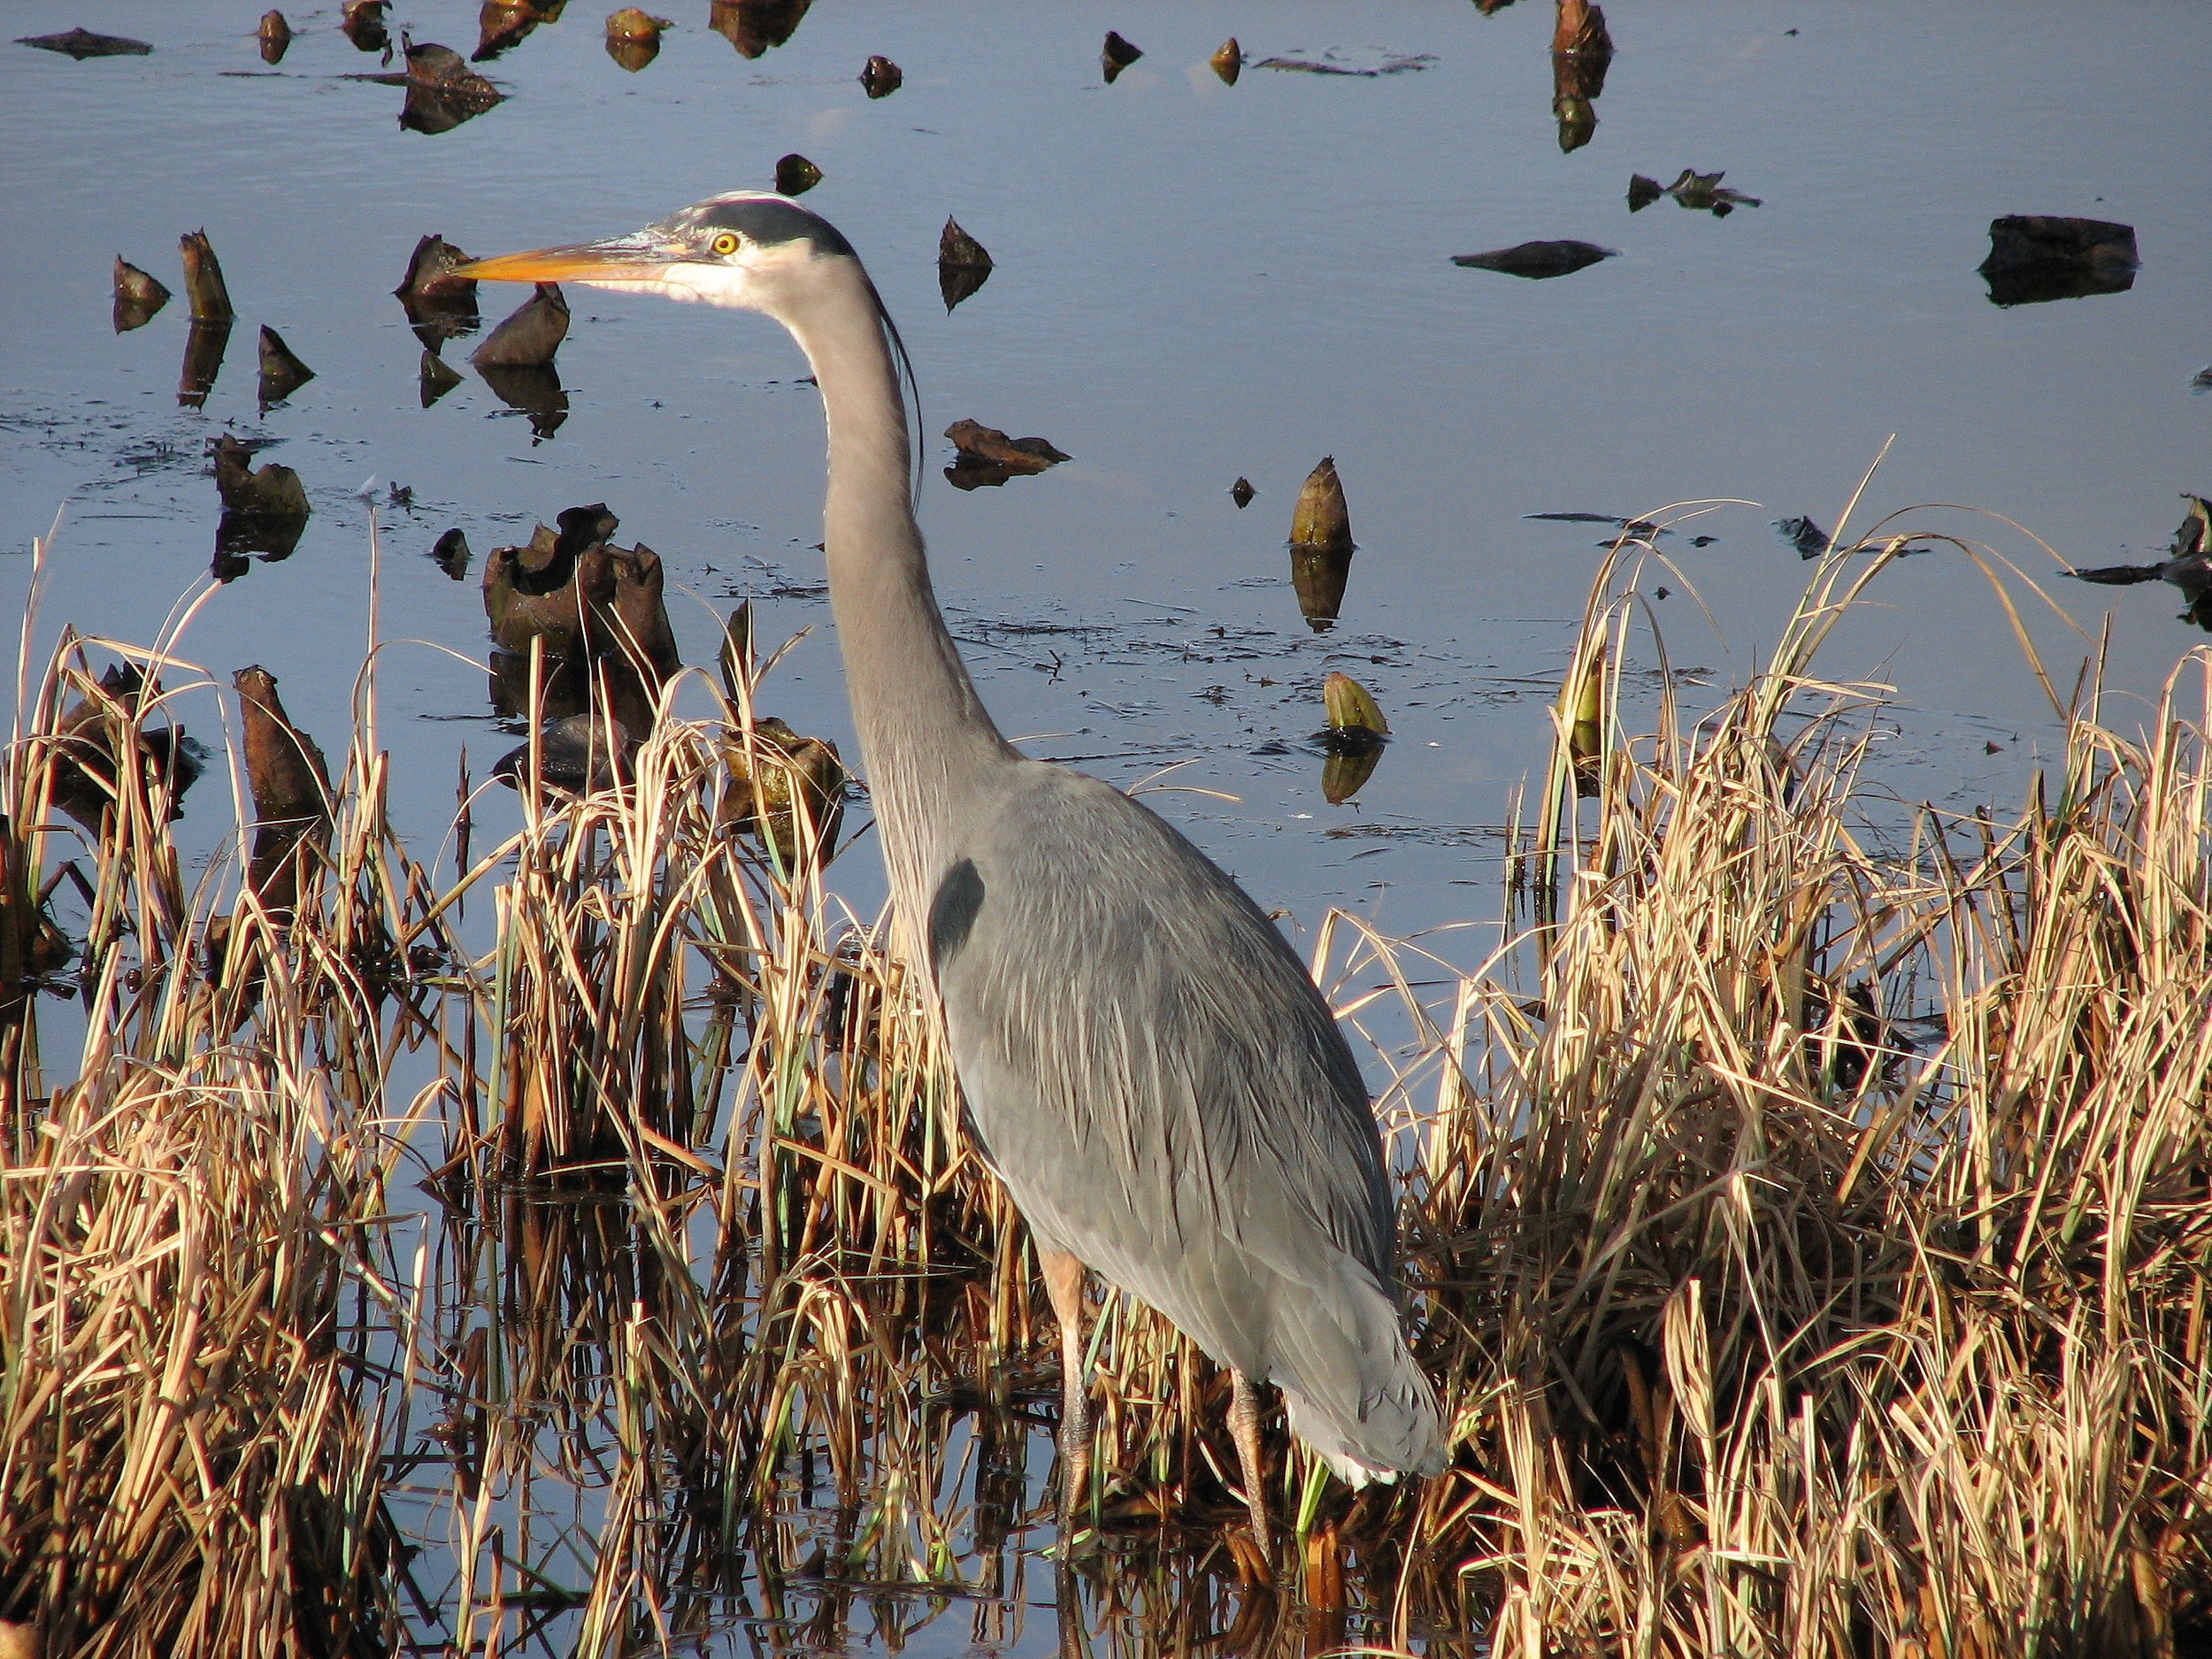 Great blue heron hunting for small fish. Photo credit: Richard Nelson.